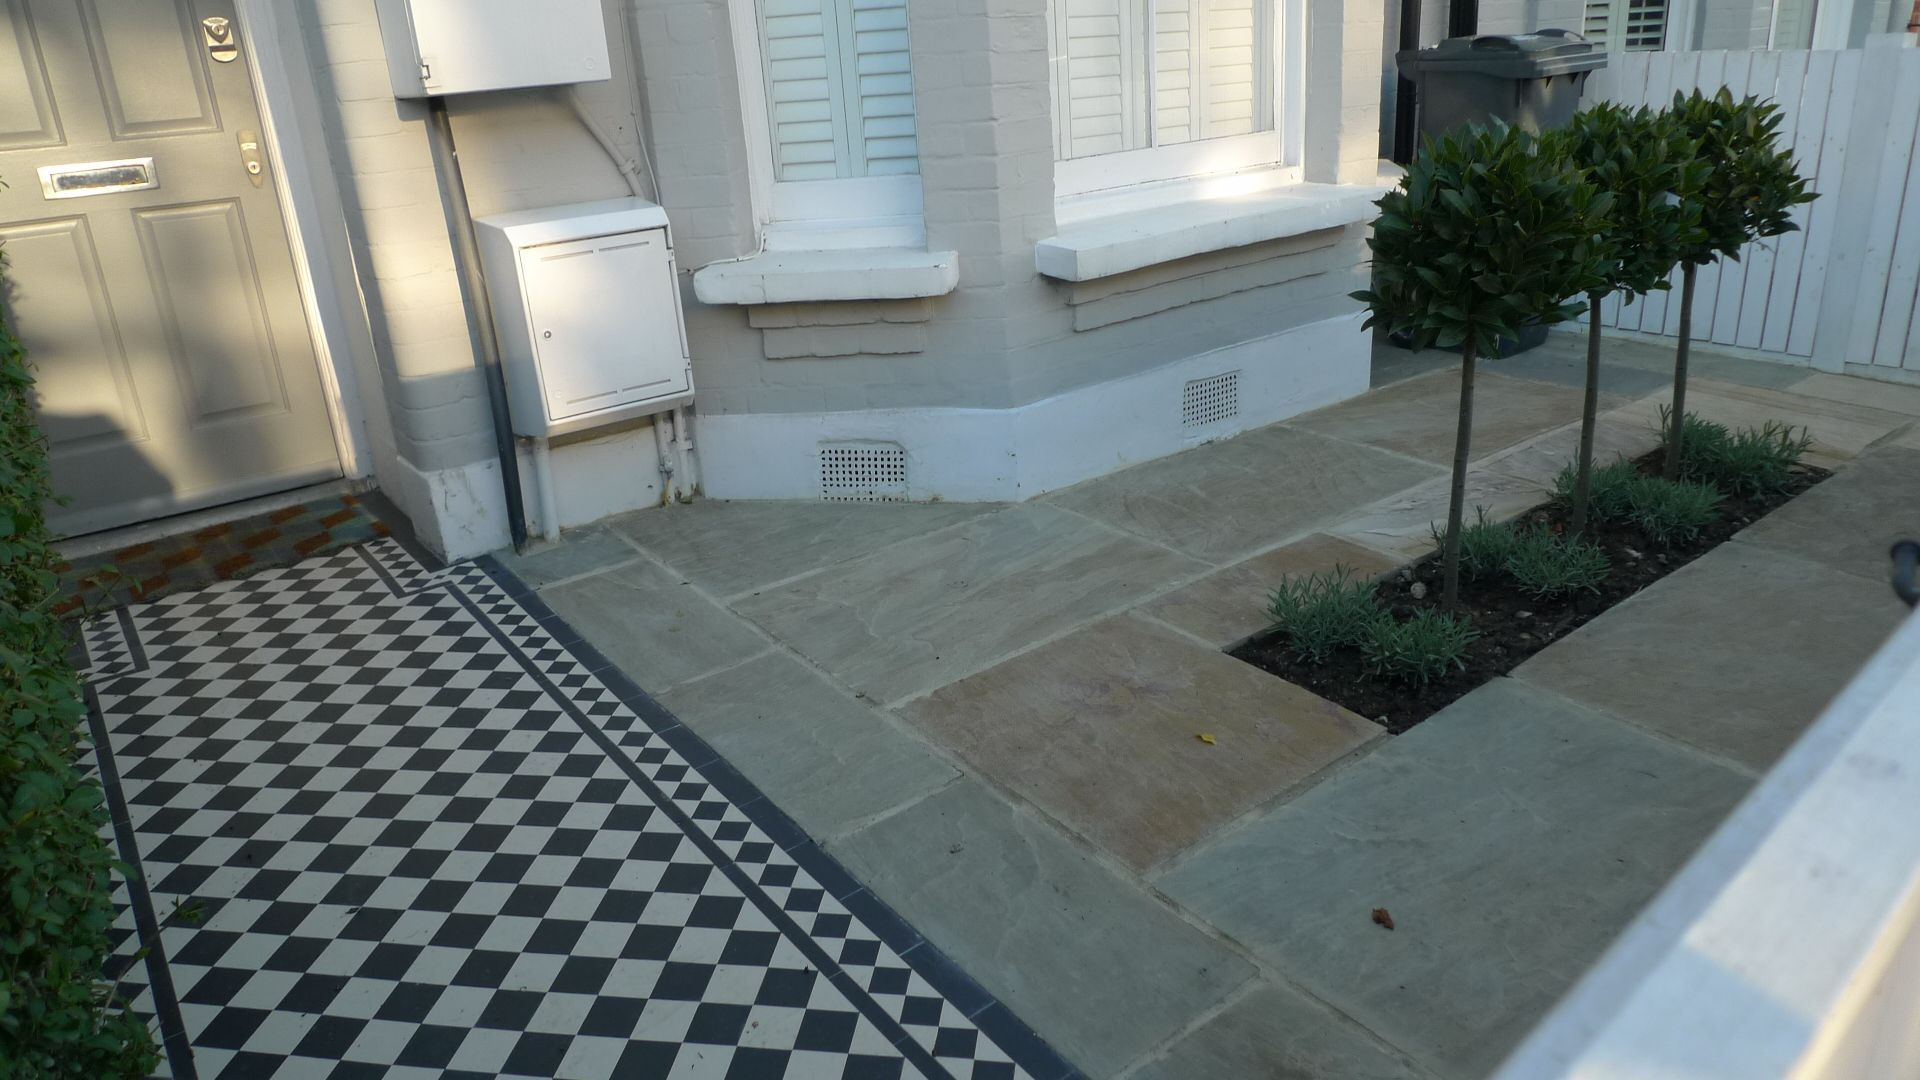 front garden victorian mosaic tile garden path sandstone paving formal topiary bay tree planting balham clapham - Front Garden Design Victorian Terrace